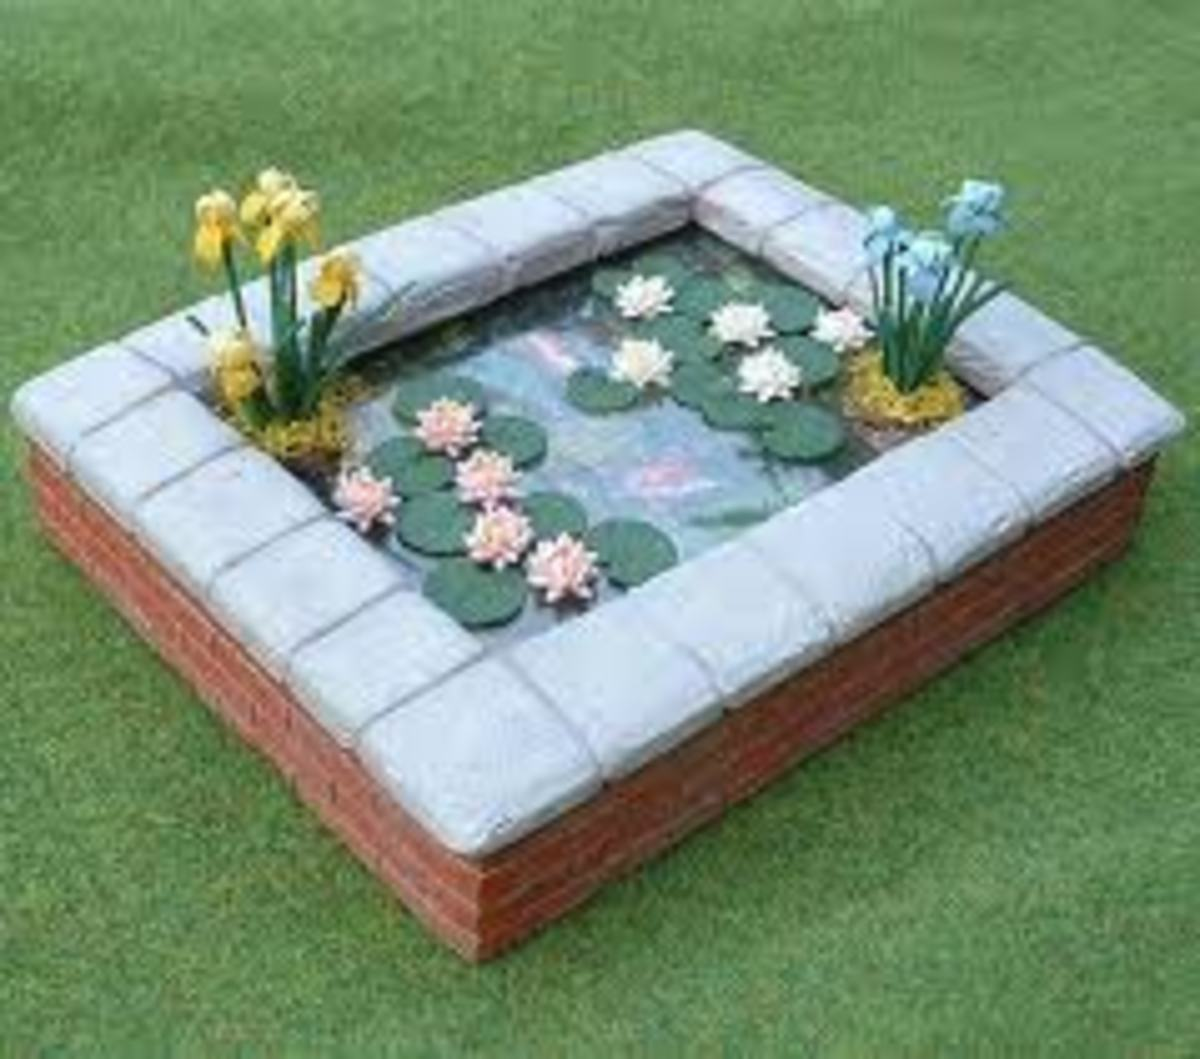 Fish pond made from a sandbox